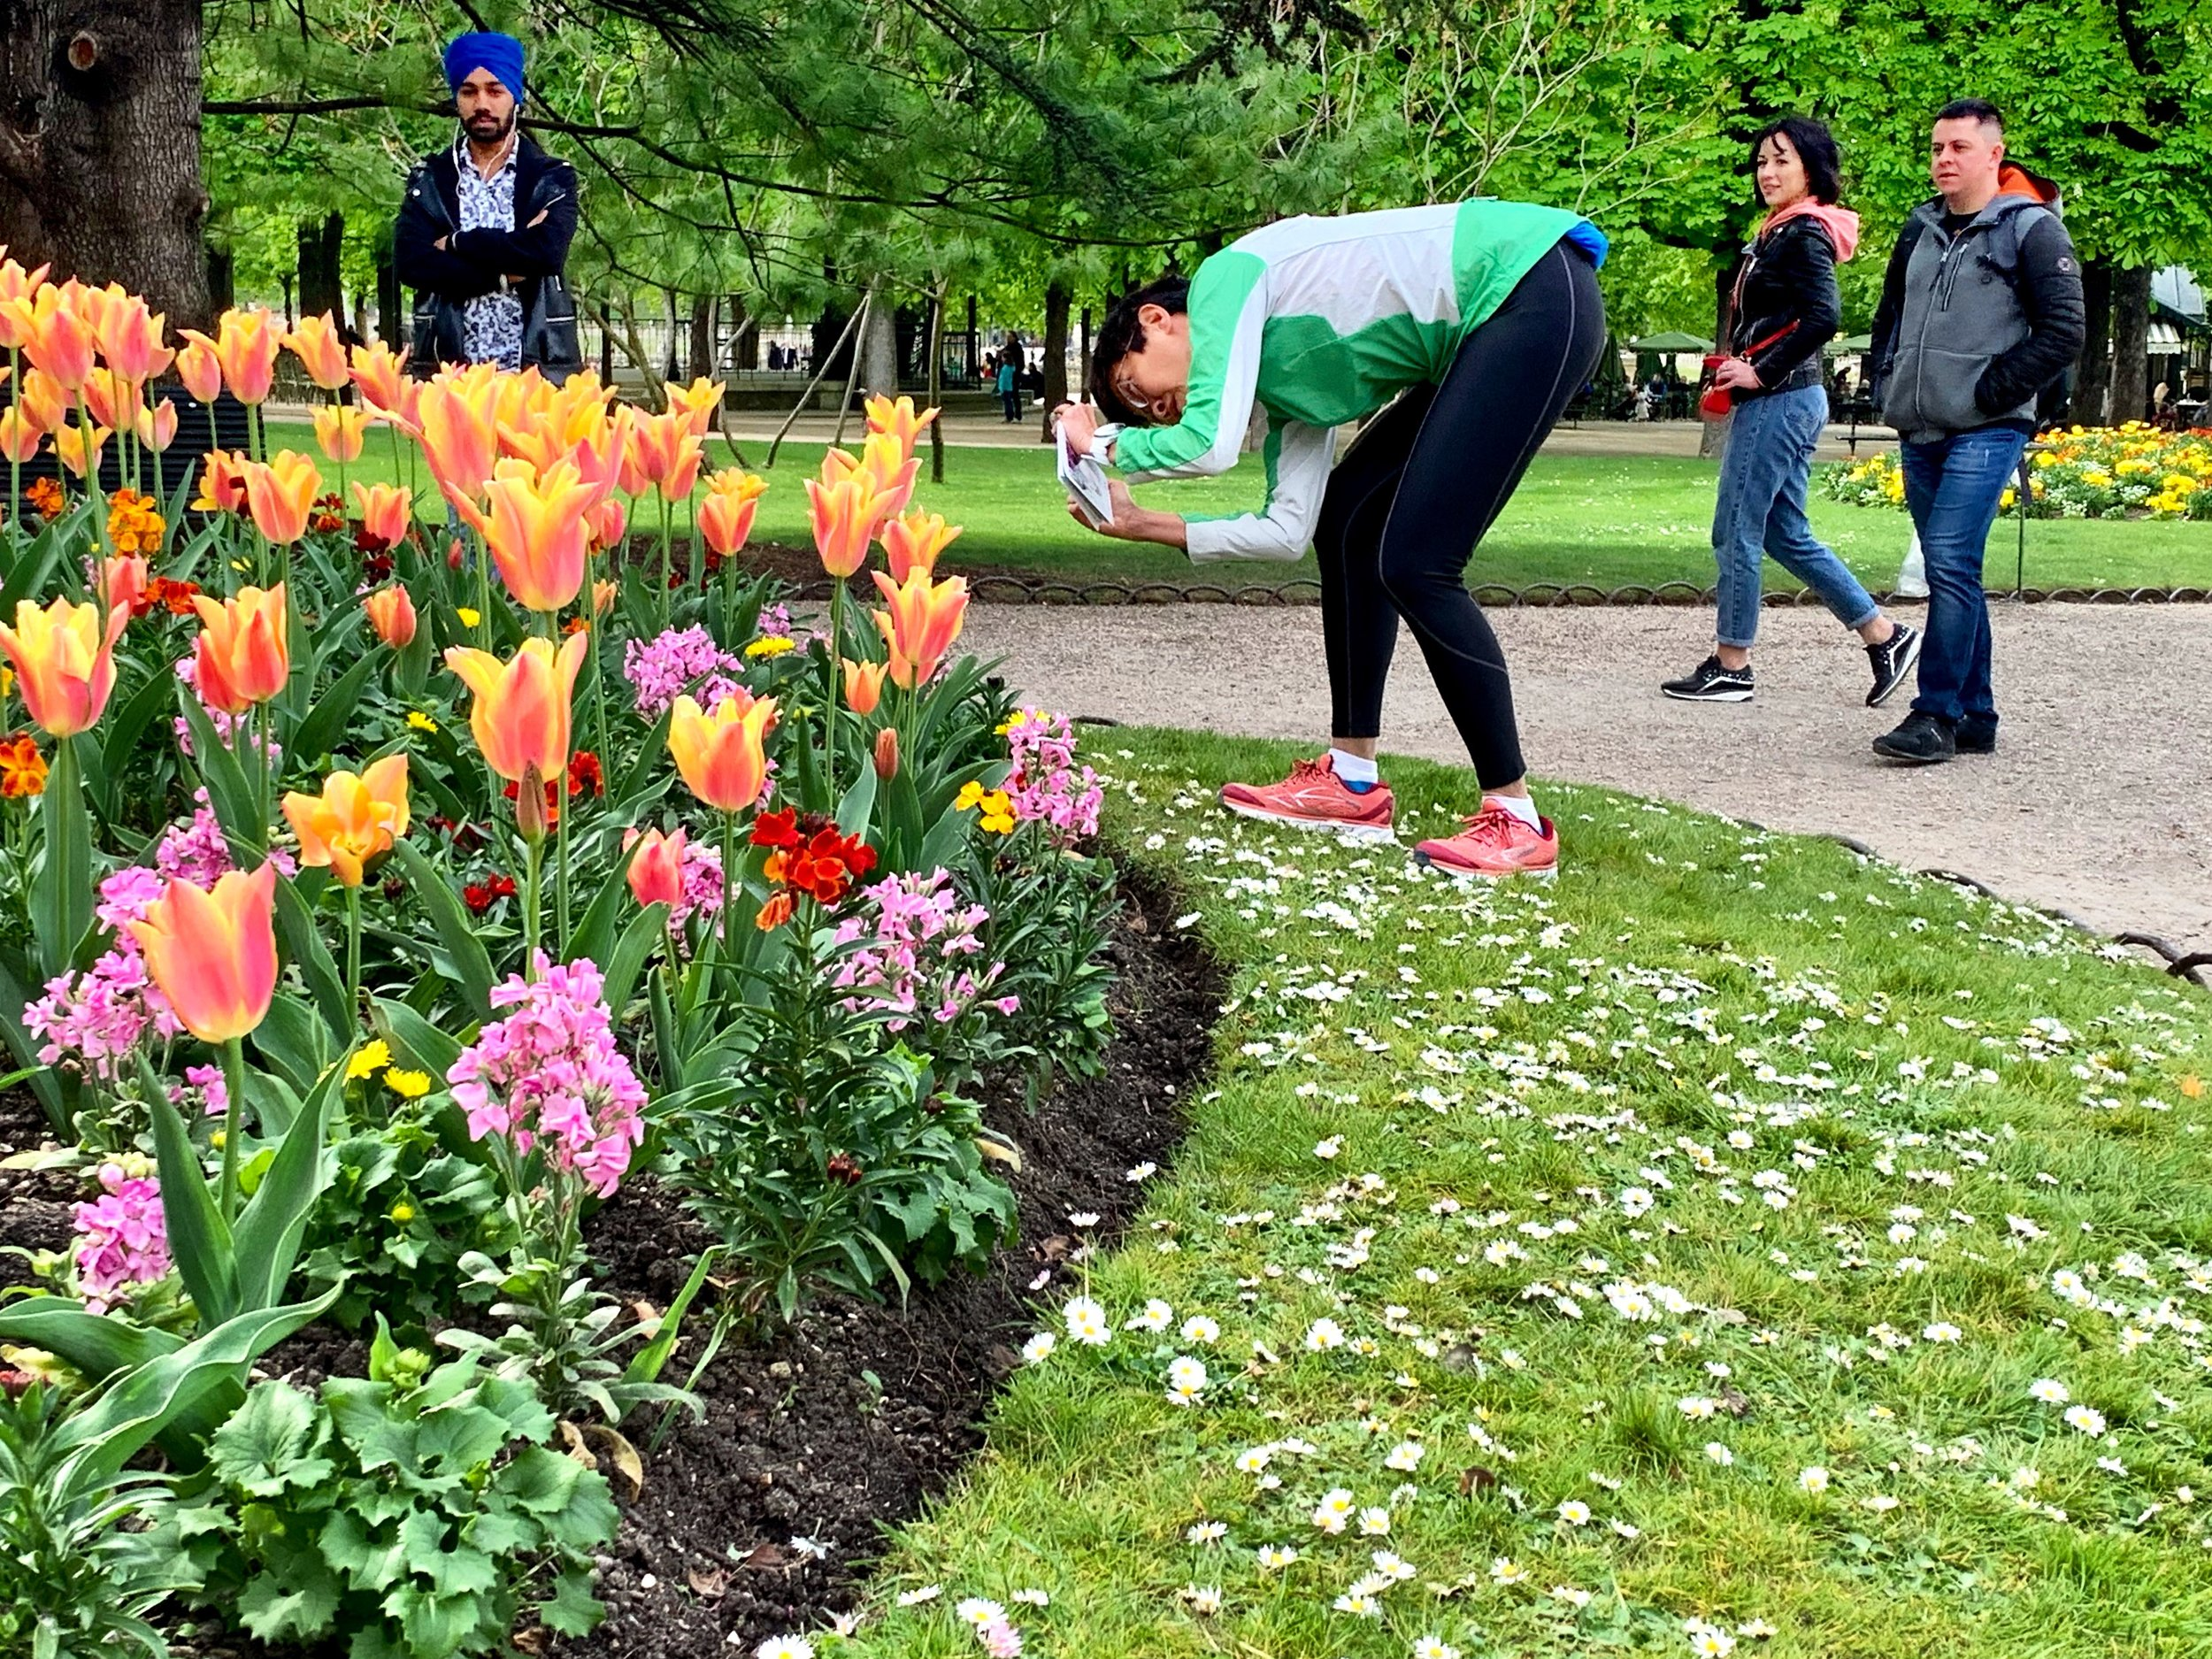 Tulips, and tourists at the Luxembourg Gardens